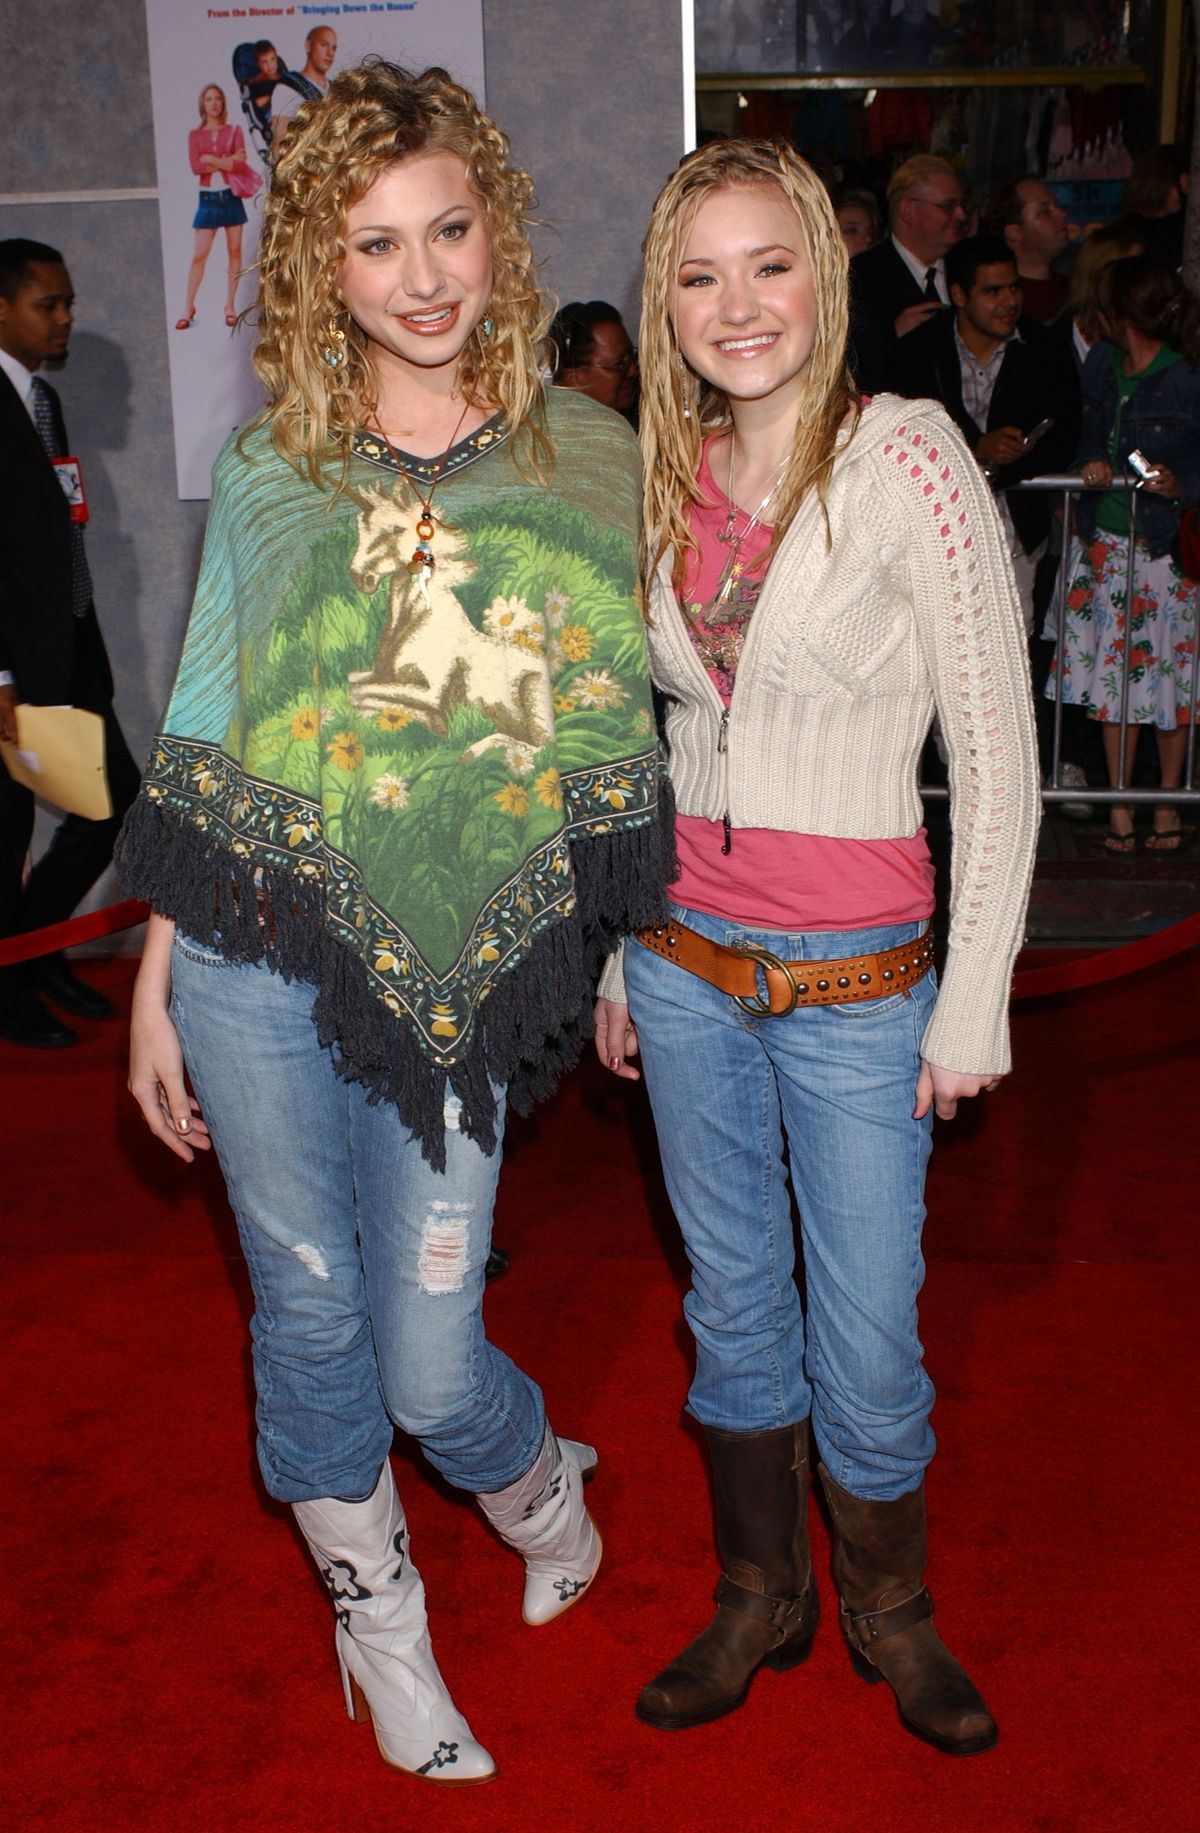 Aly and AJ at the premiere of The Pacifier in 2005.